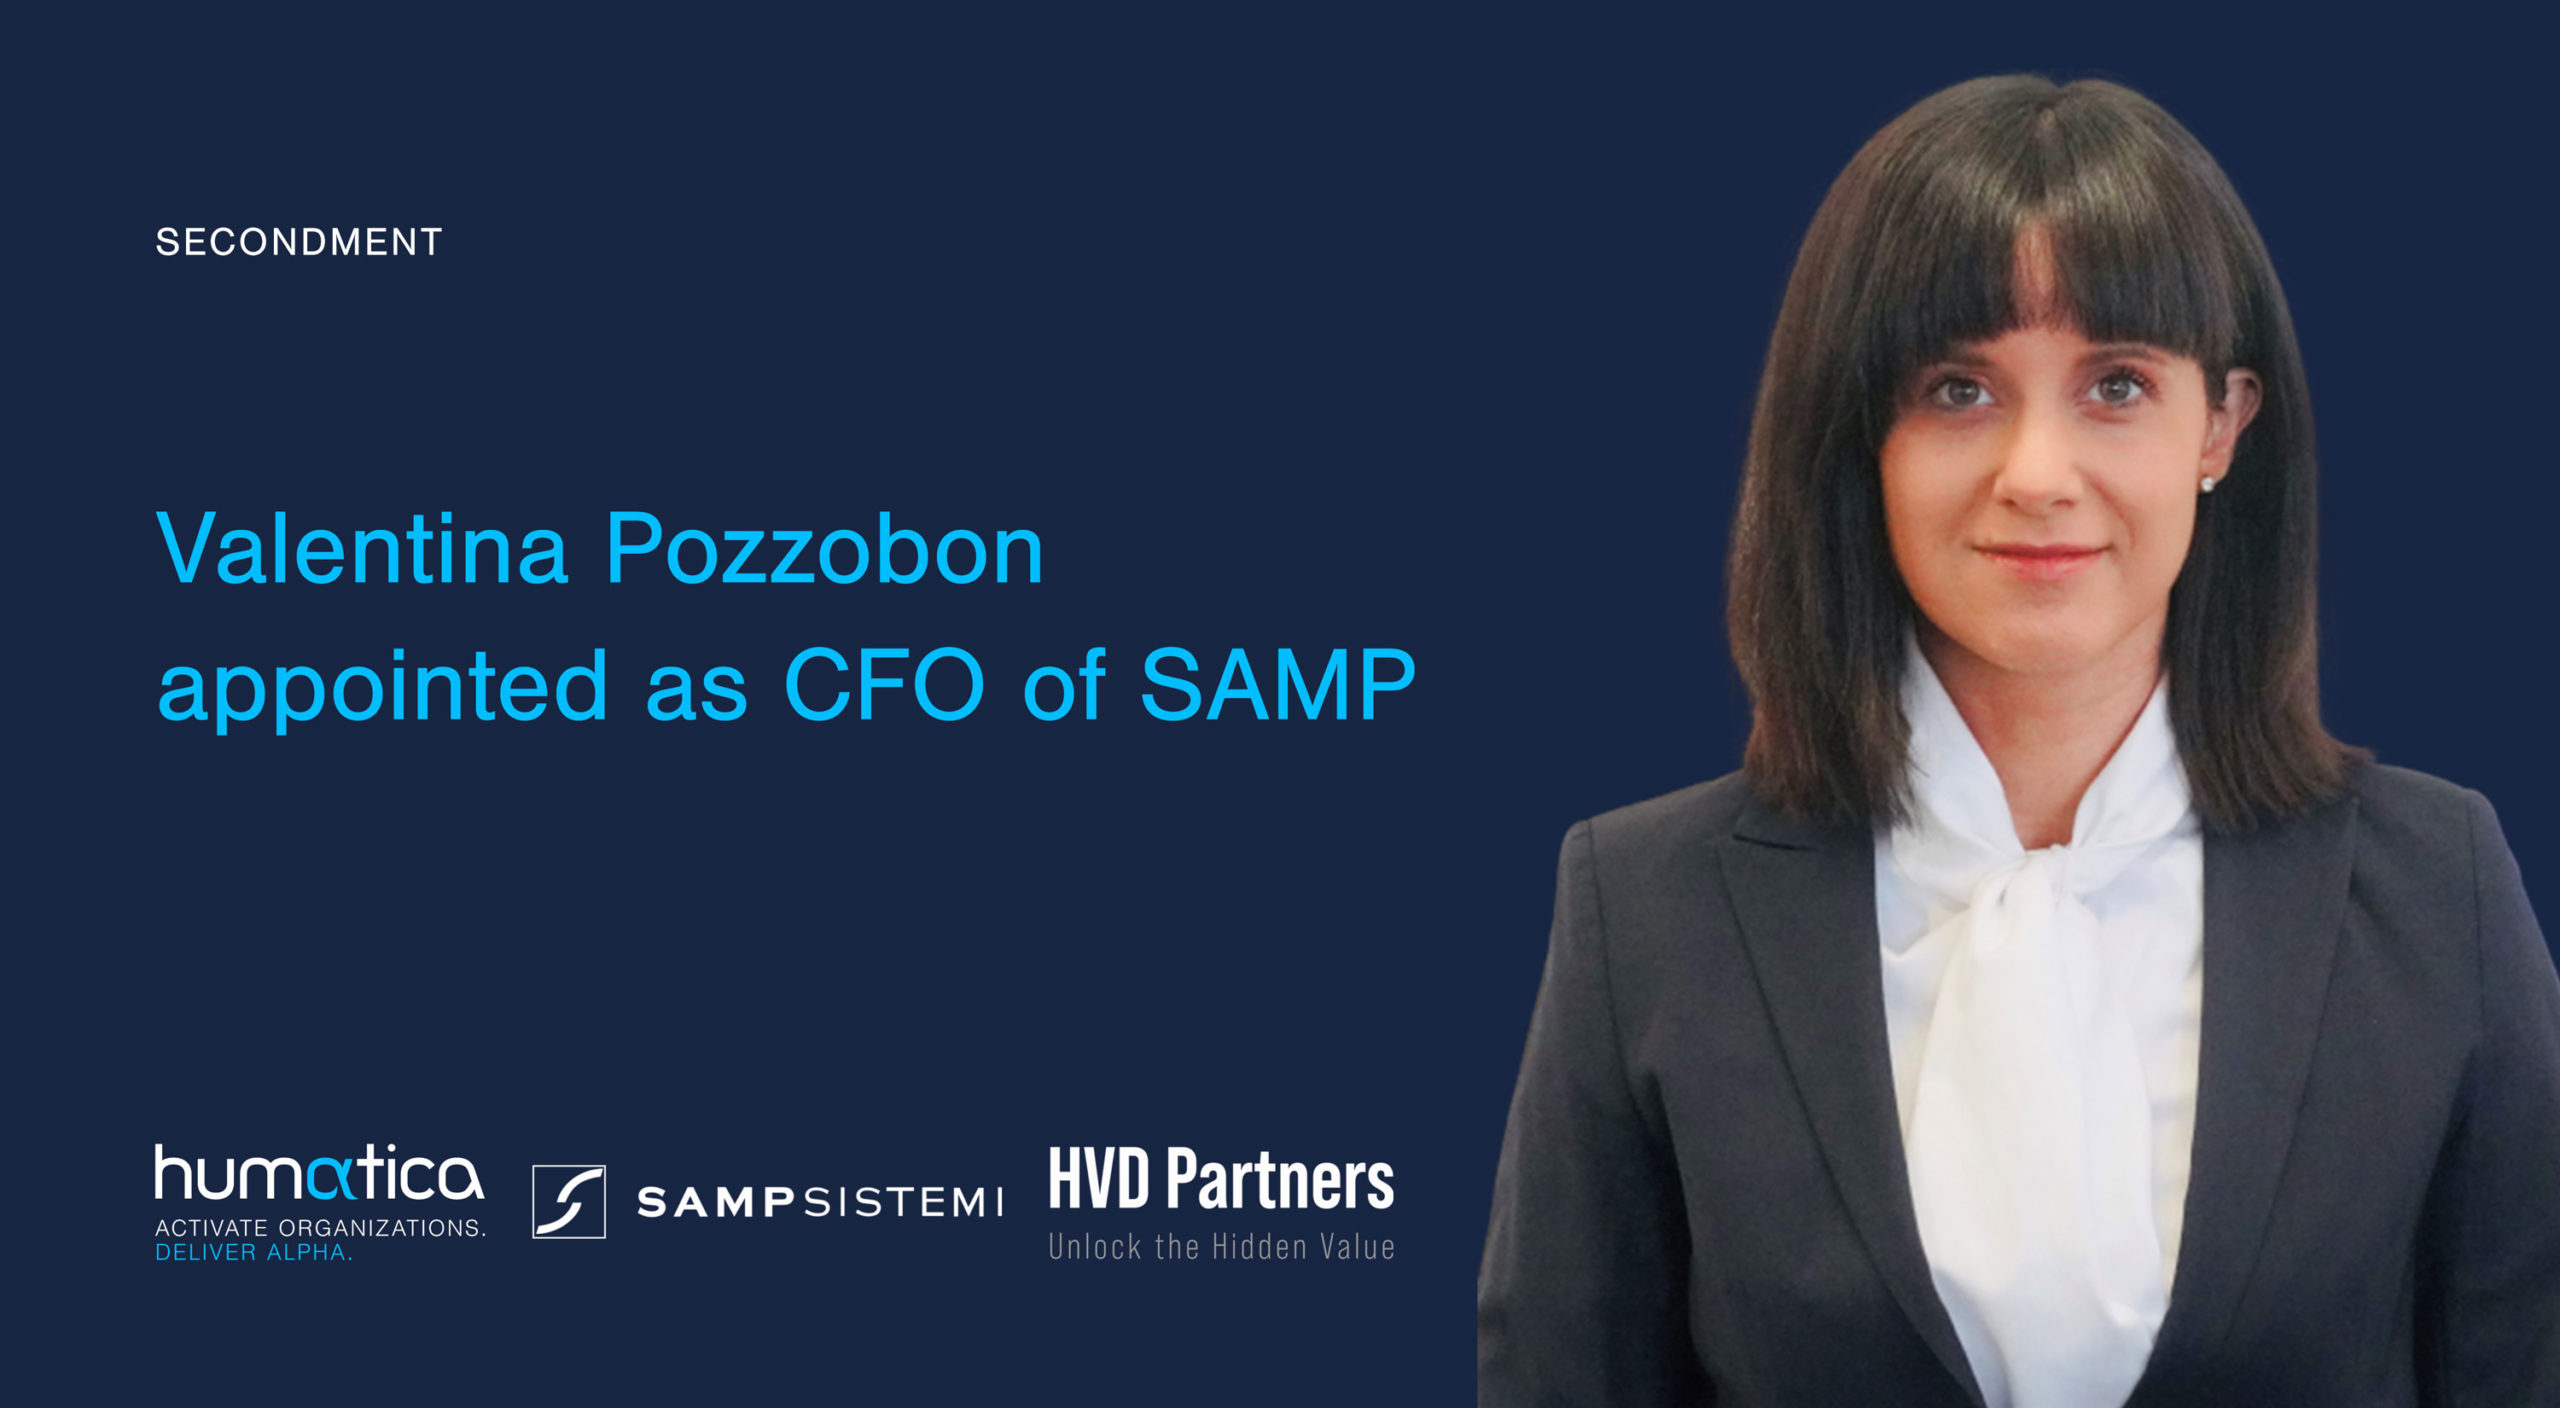 Valentina Pozzobon appointed as CFO of SAMP